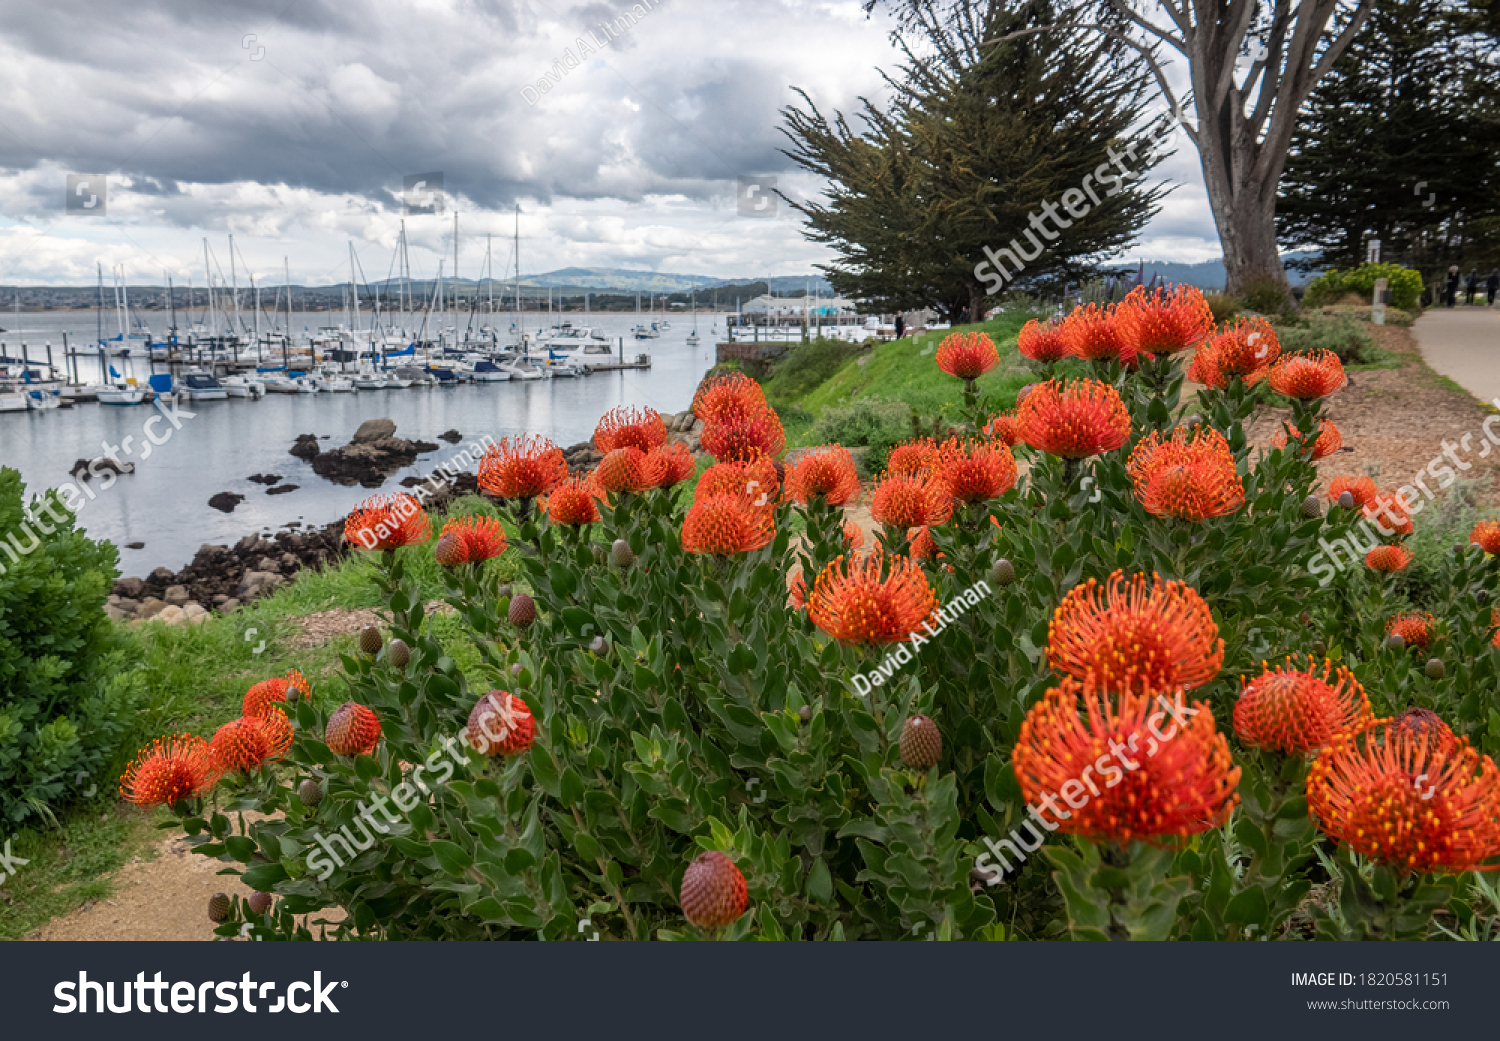 Blooming Scarlet Banksia flowers line the walkway overlooking the Monterey harbor and marina, along the Pacific Coast of California.